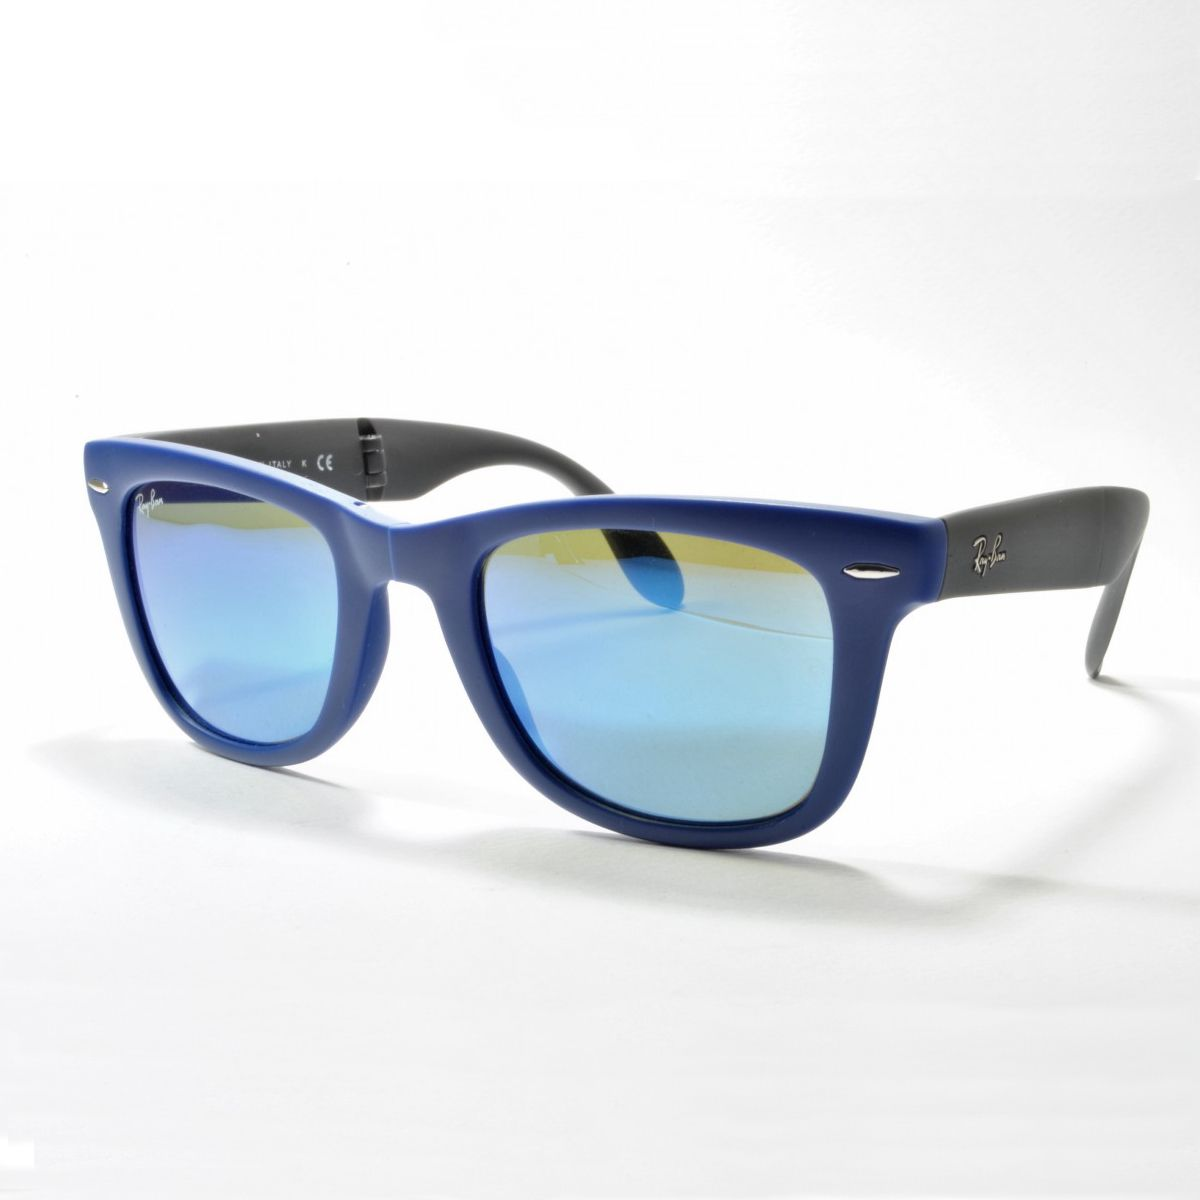 cheap ray ban philippines  ray ban wayfarer folding classic sunglasses 54mm blue frame/blue mirror lens